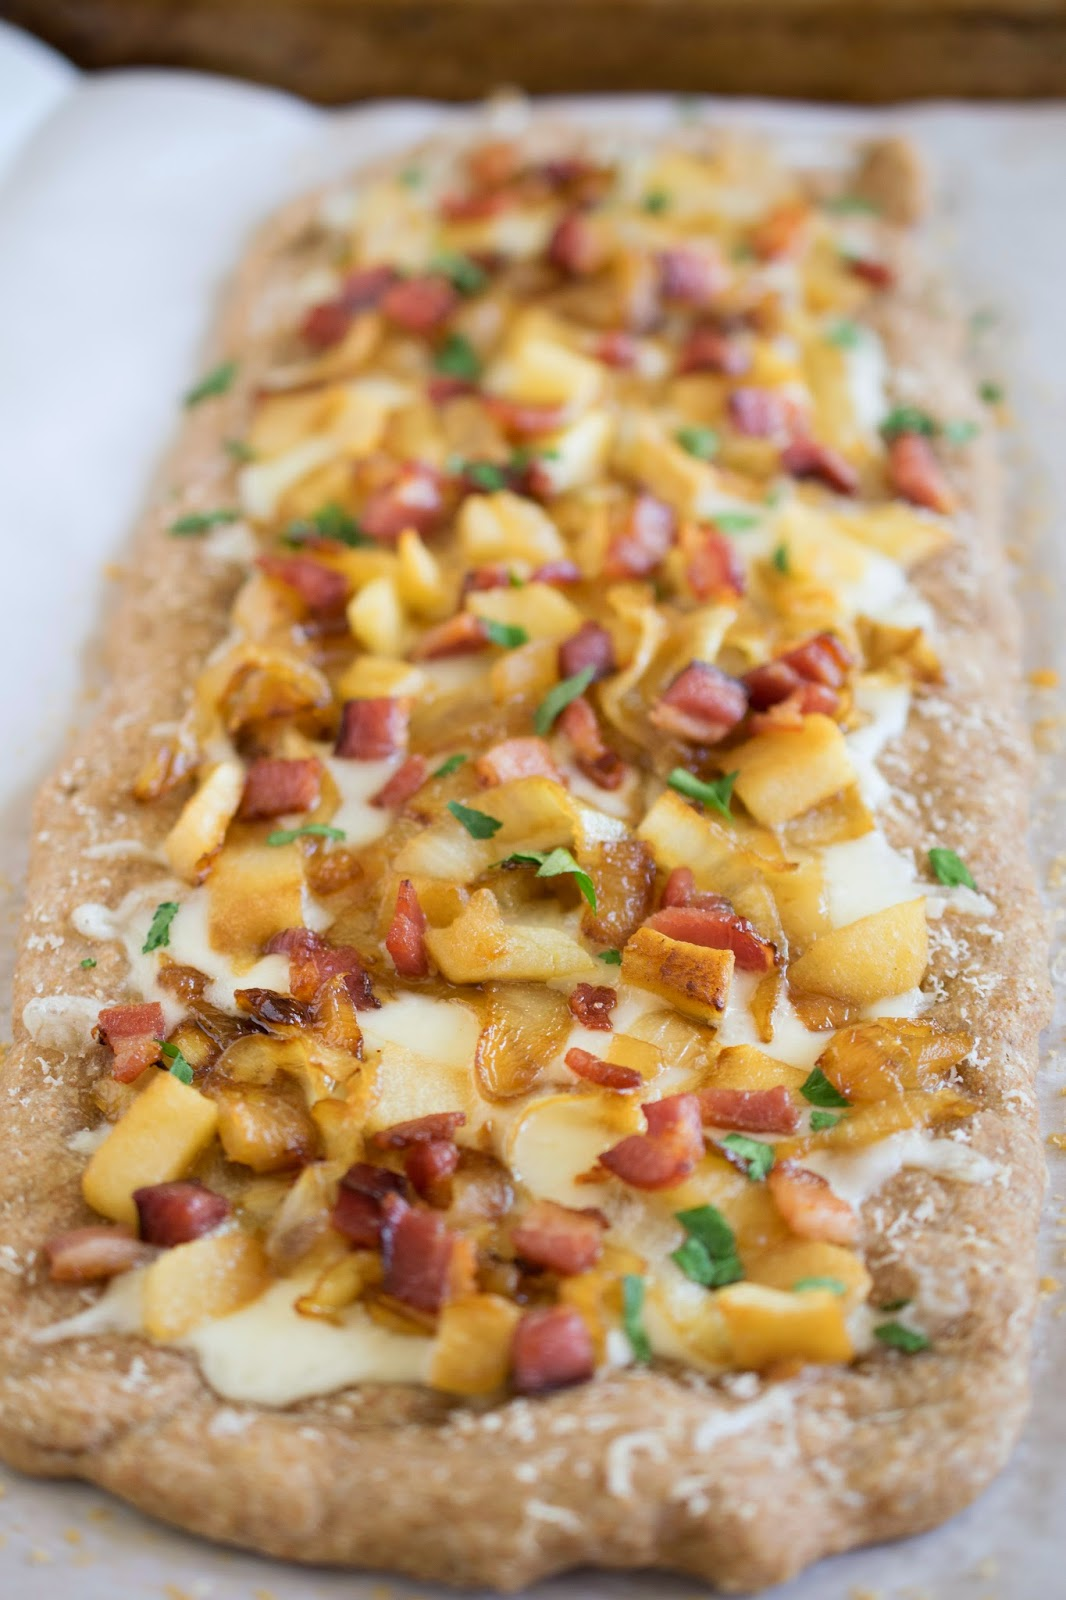 Caramelized onion, apple and bacon flatbread pizza